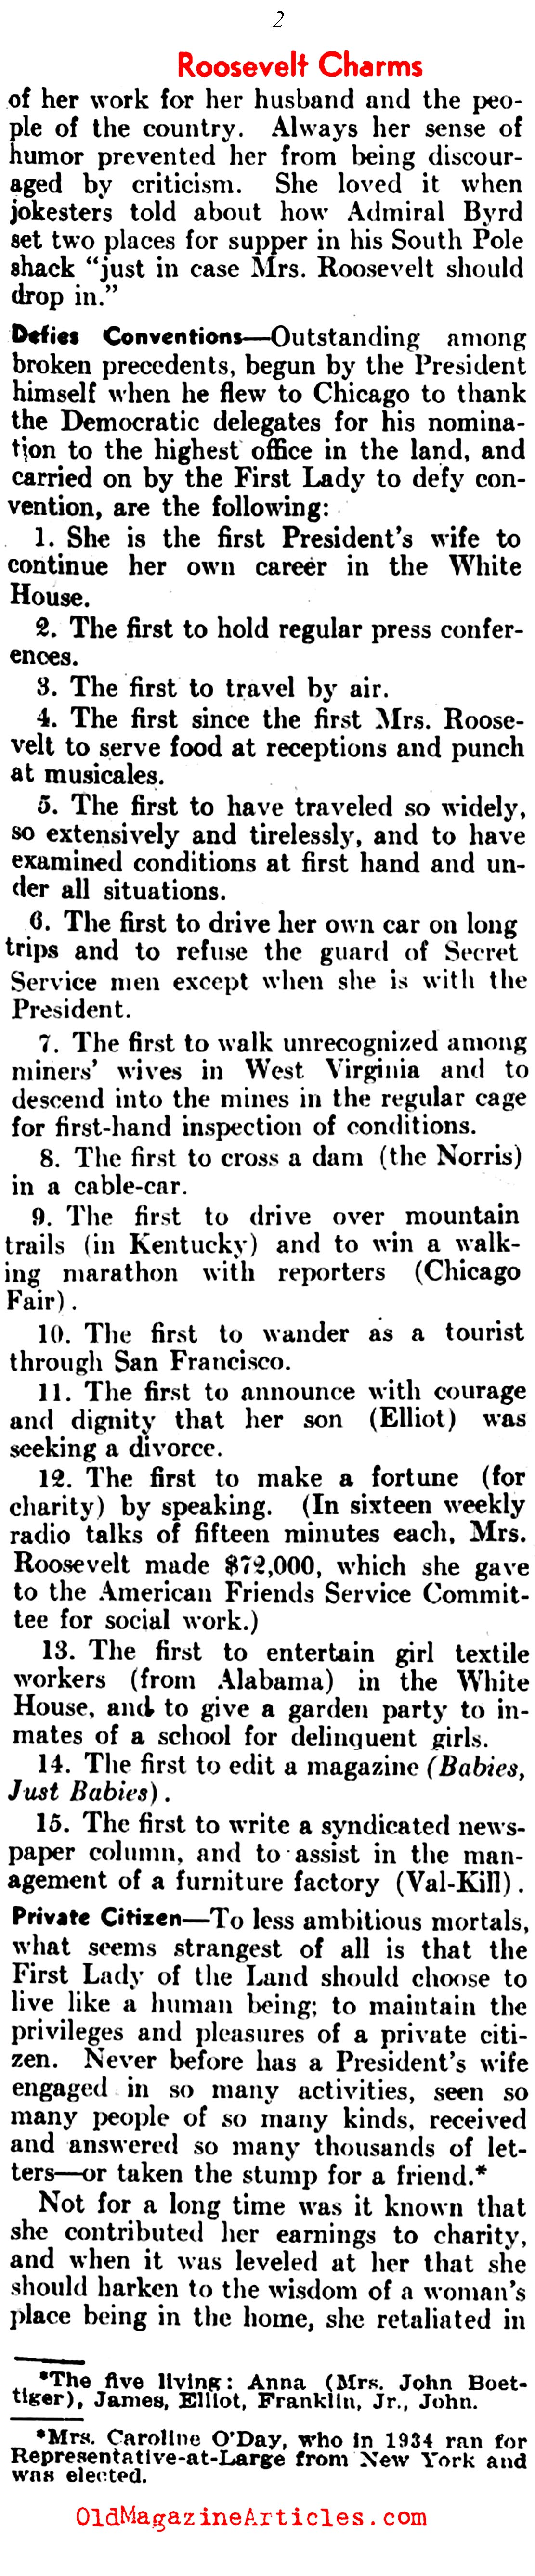 Eleanor Roosevelt and Her Many Firsts (The Literary Digest, 1937)